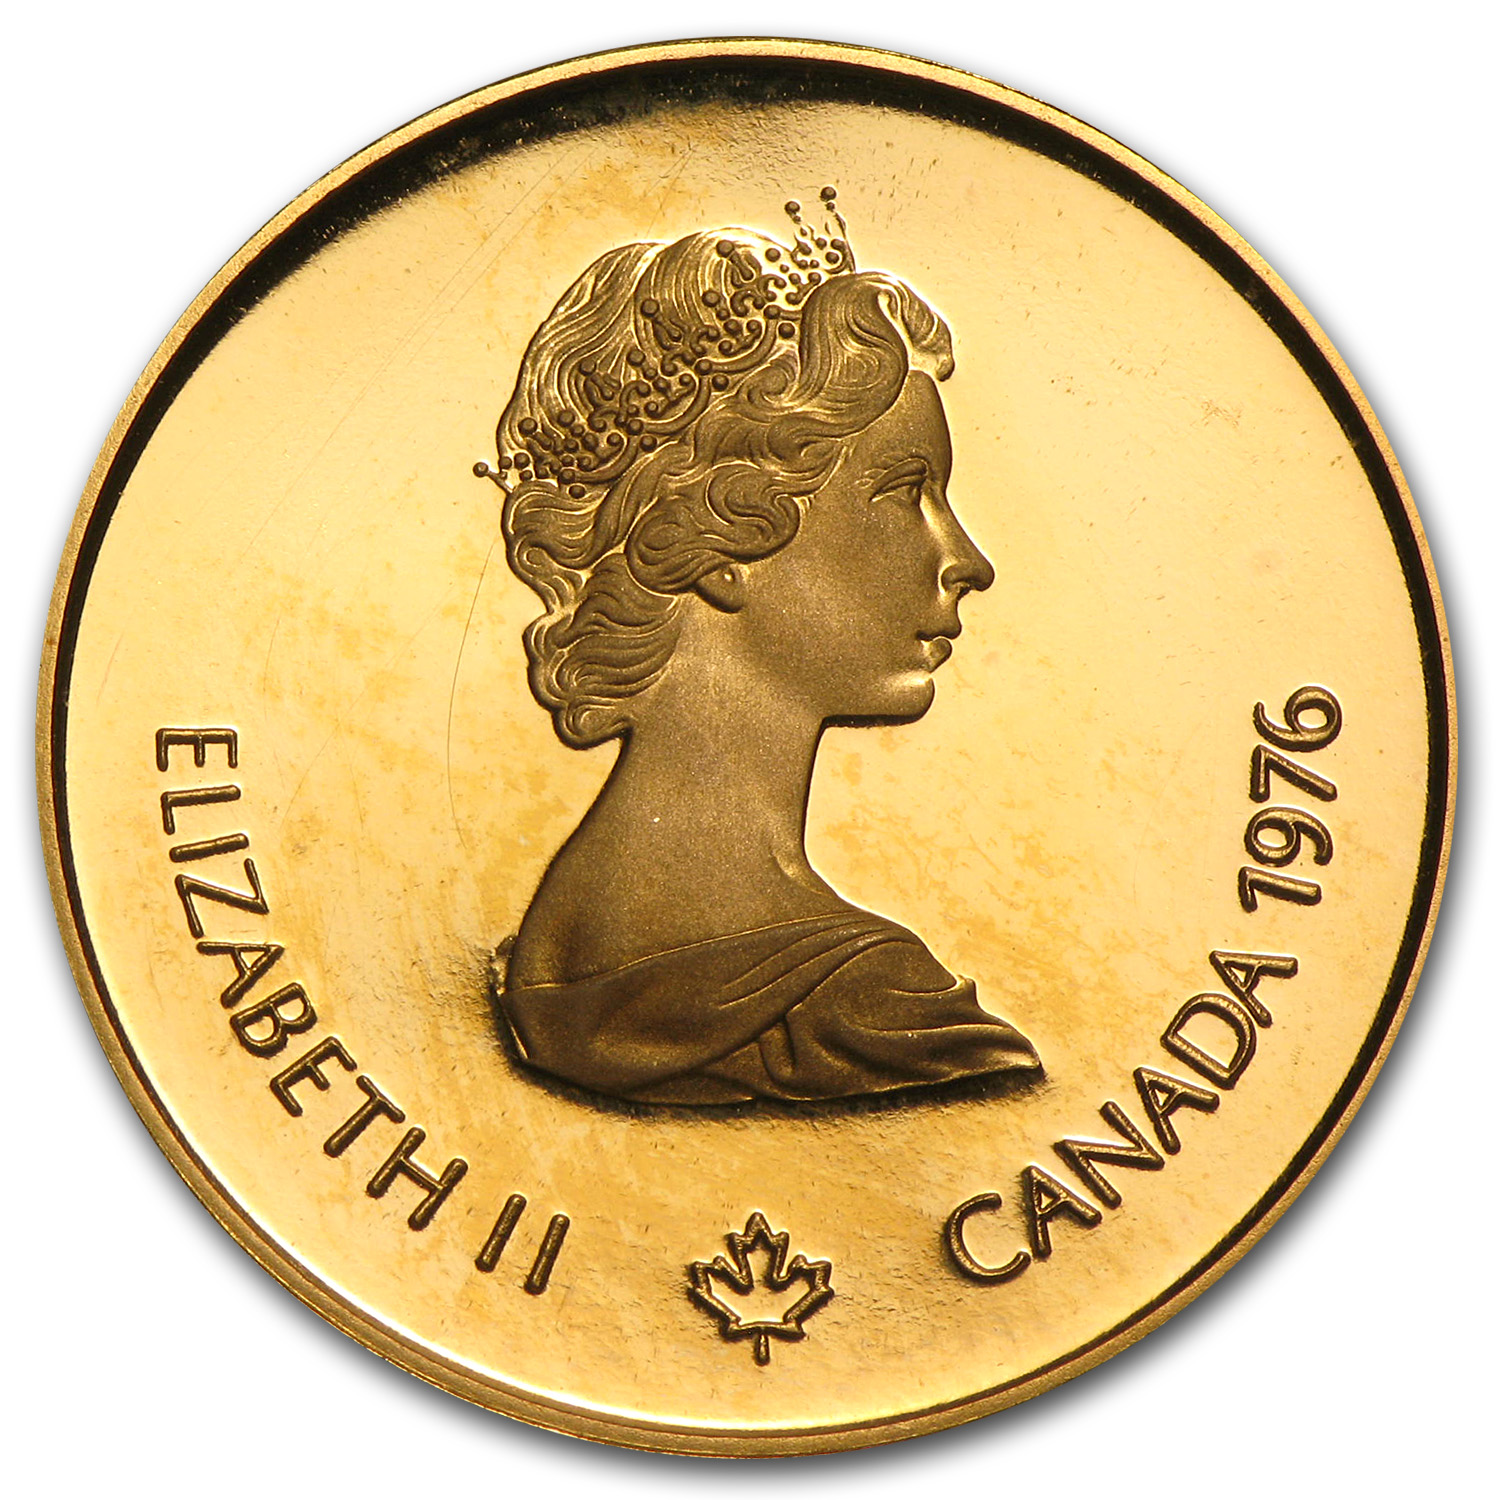 1976 1/2 oz Gold Canadian $100 Olympic Proof